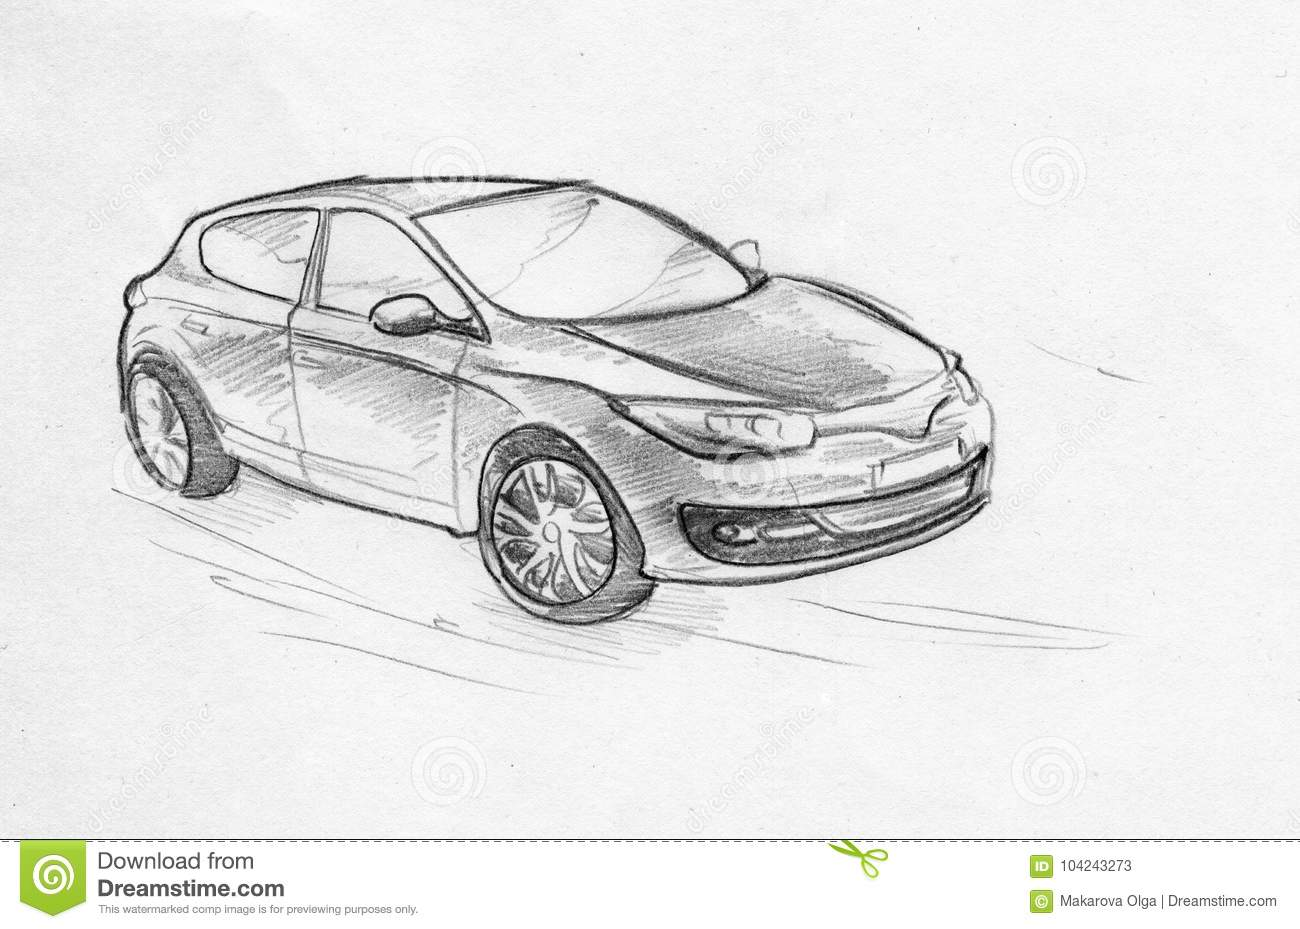 Hand drawn pencil sketch illustration of a moving car on the road